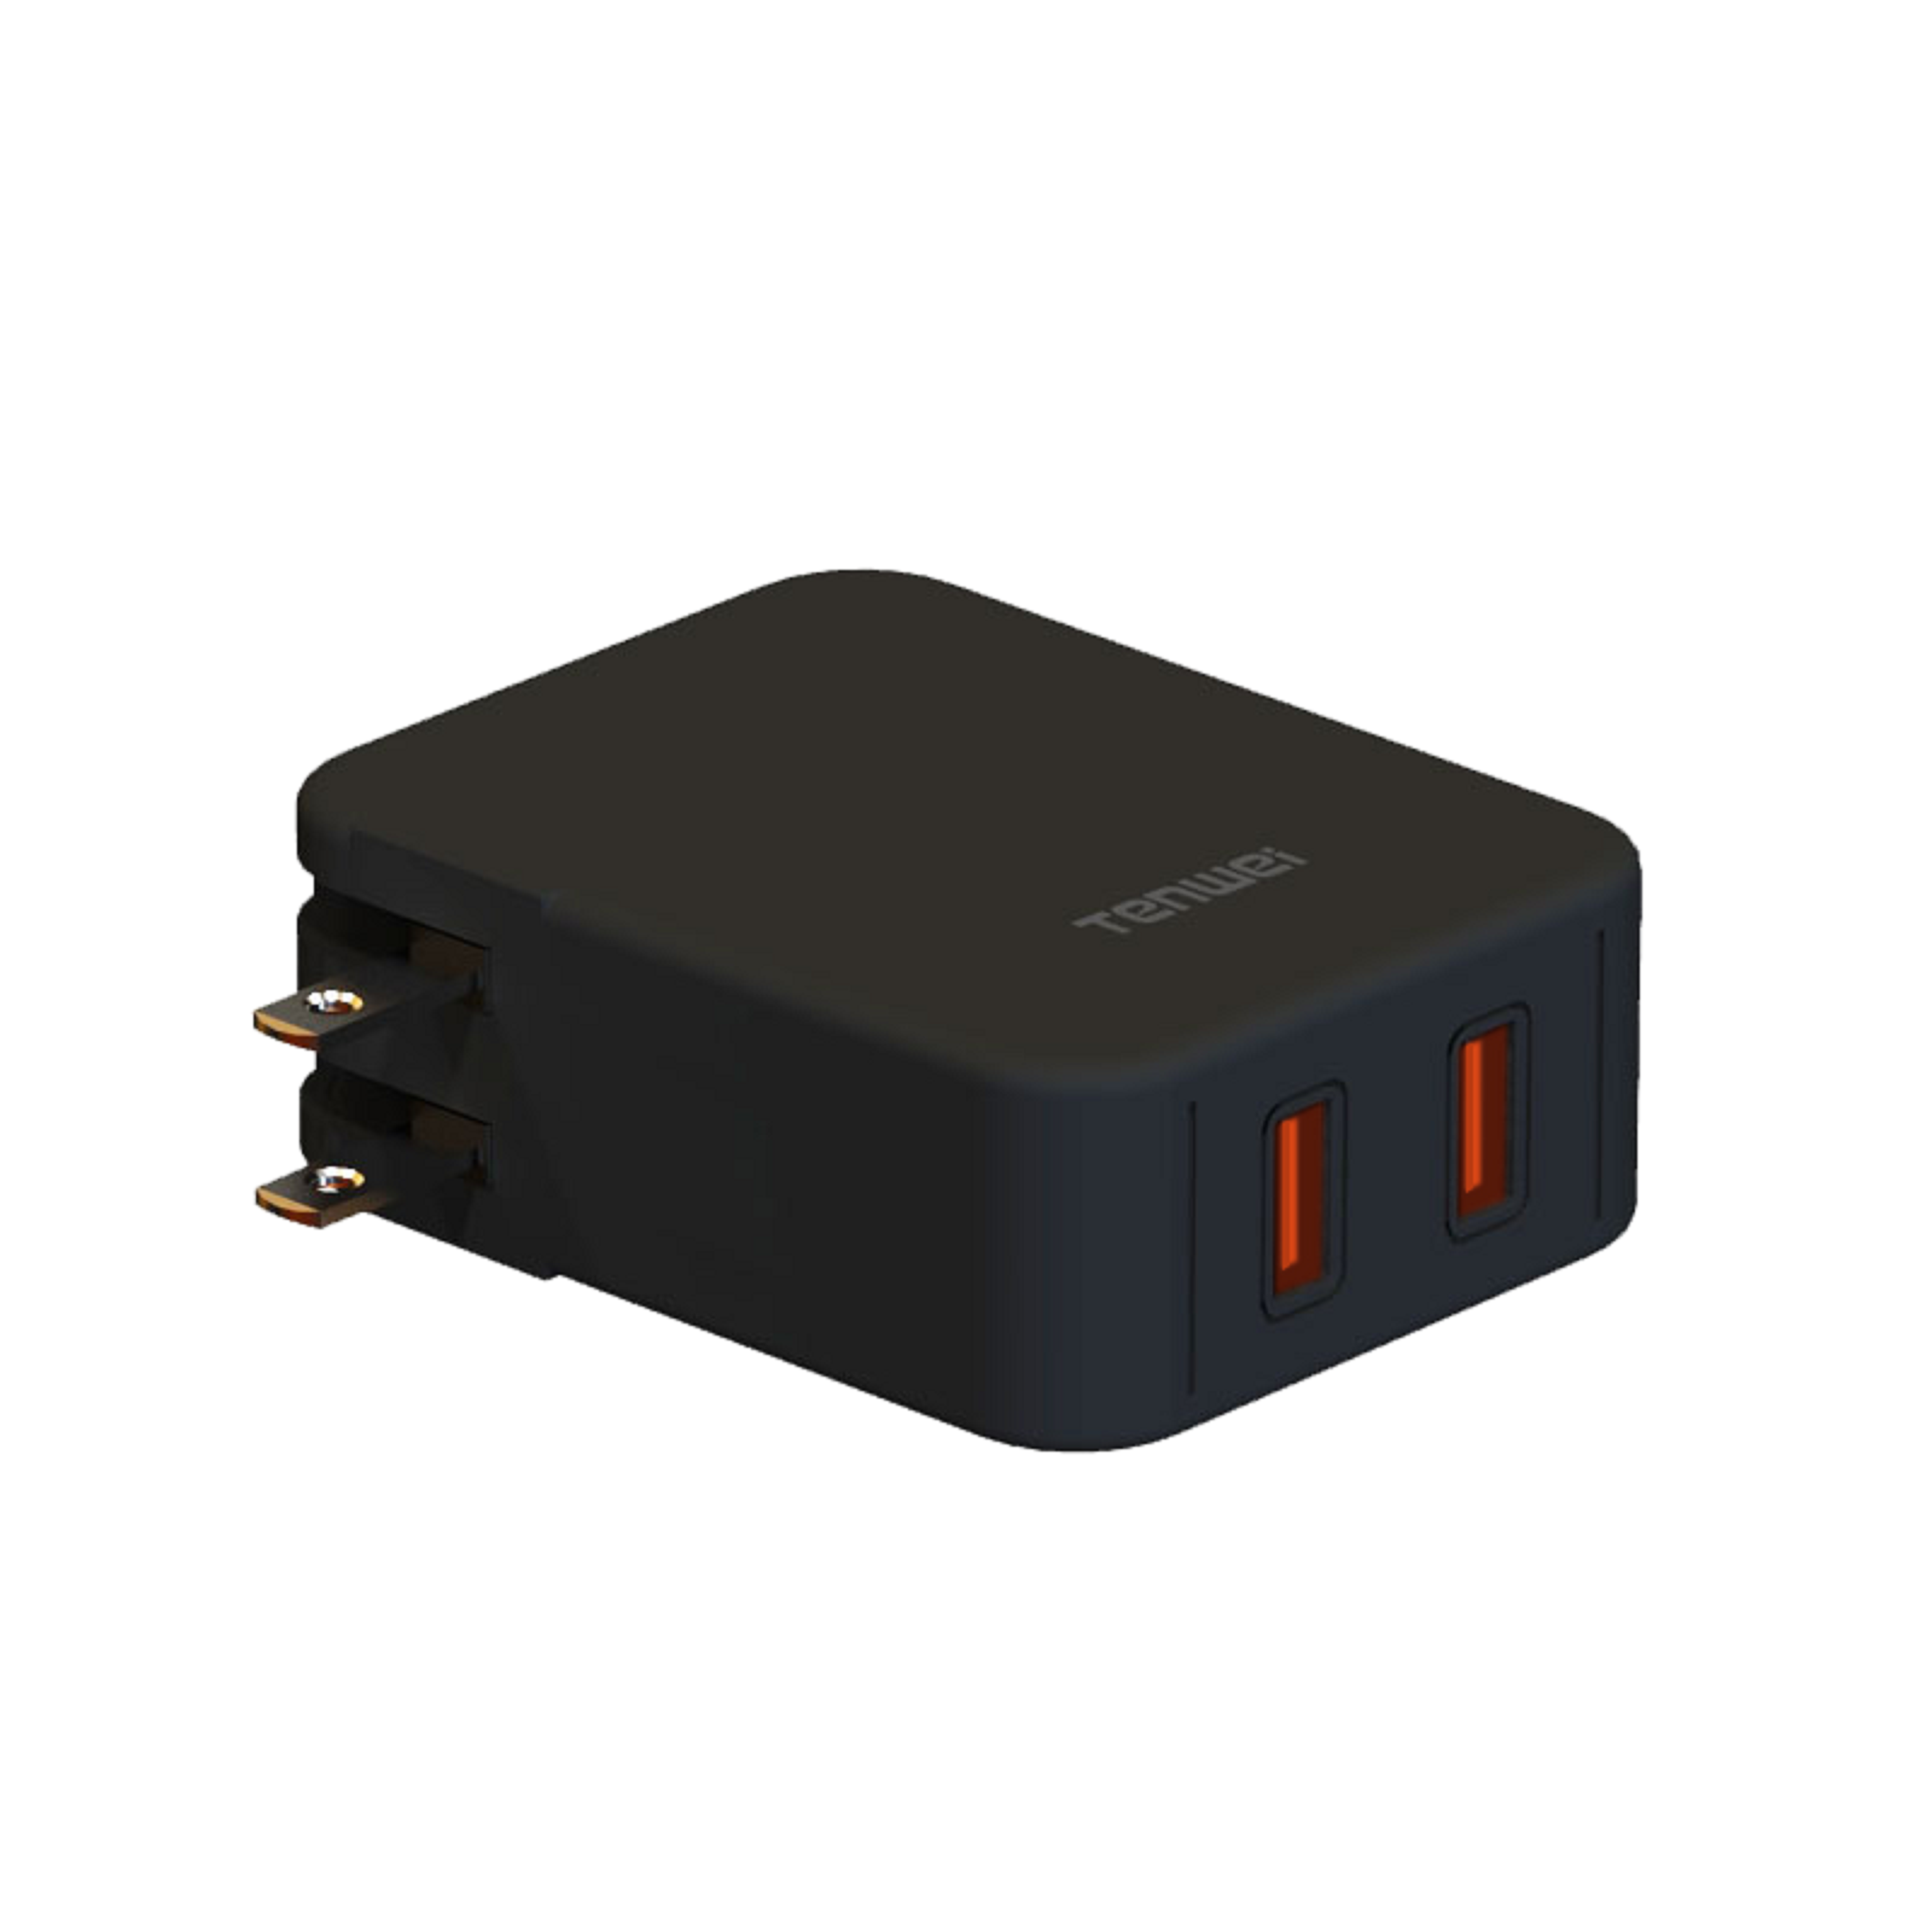 TS36D QC 3.0 36W Dual Ports Wall Charger with Foldable Plug